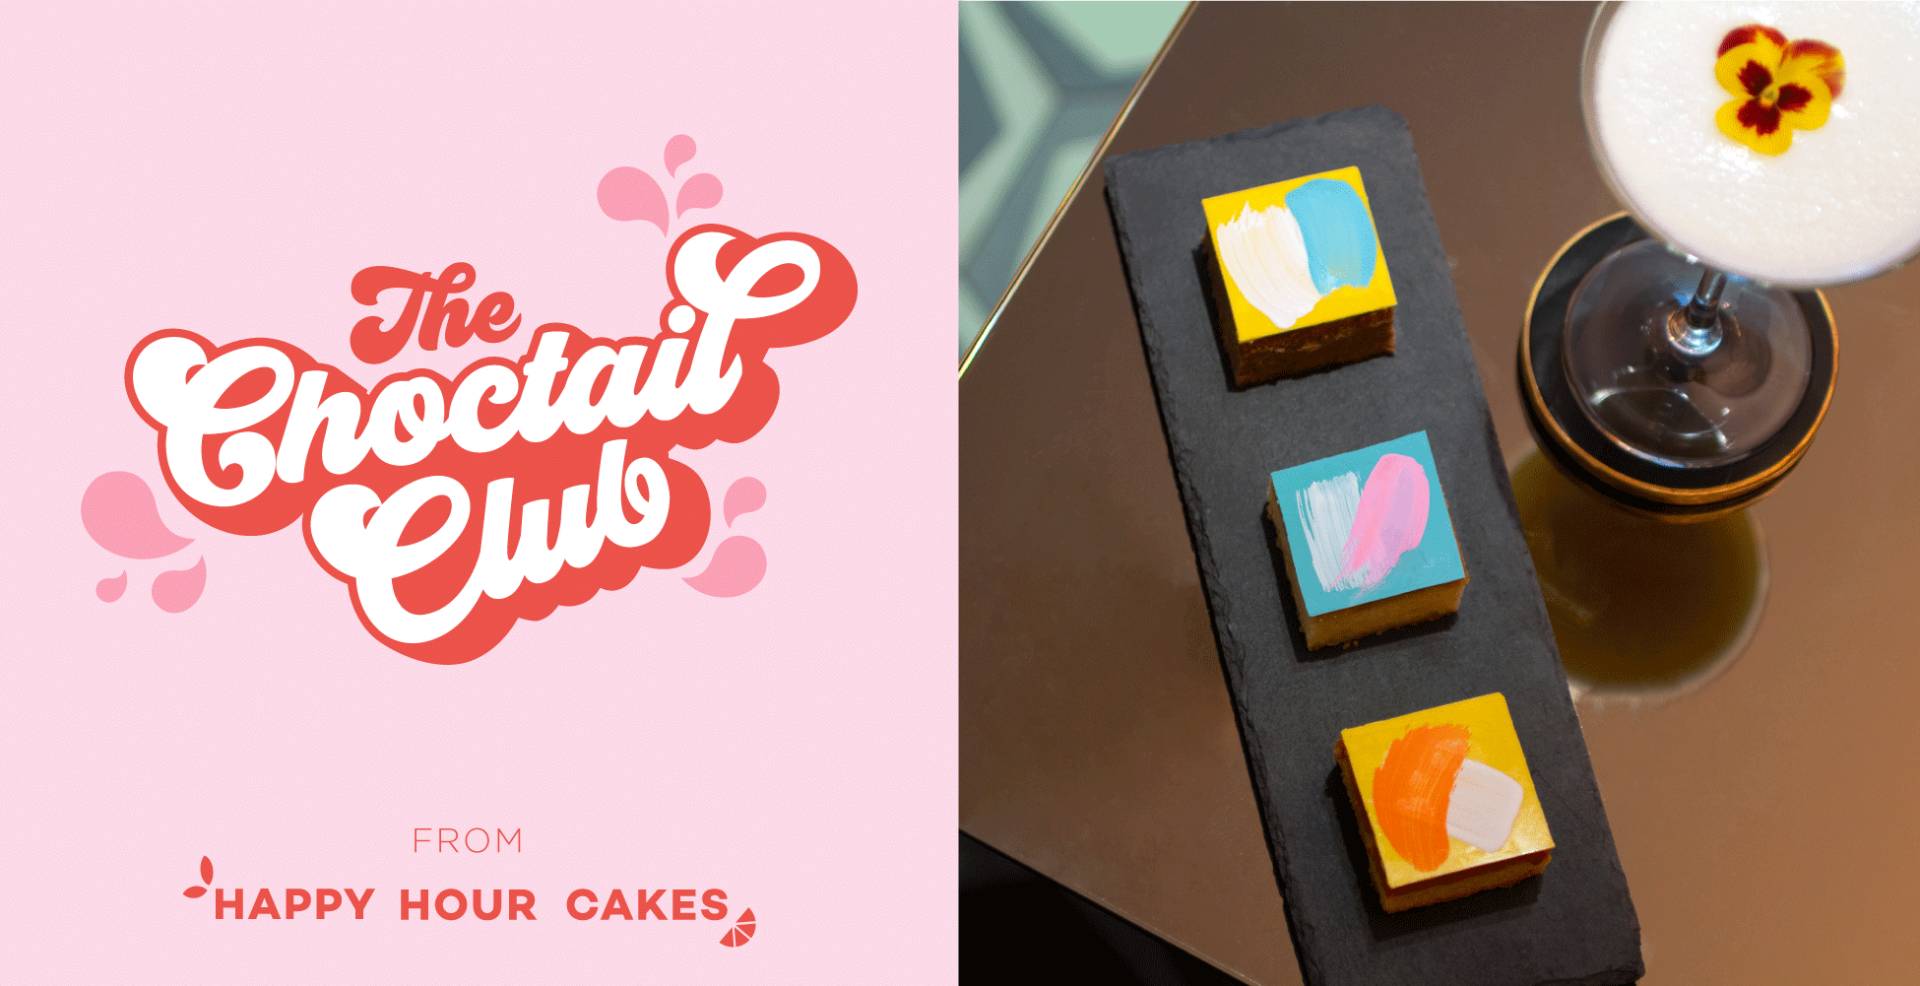 The Choctail Club from Happy Hour Cakes